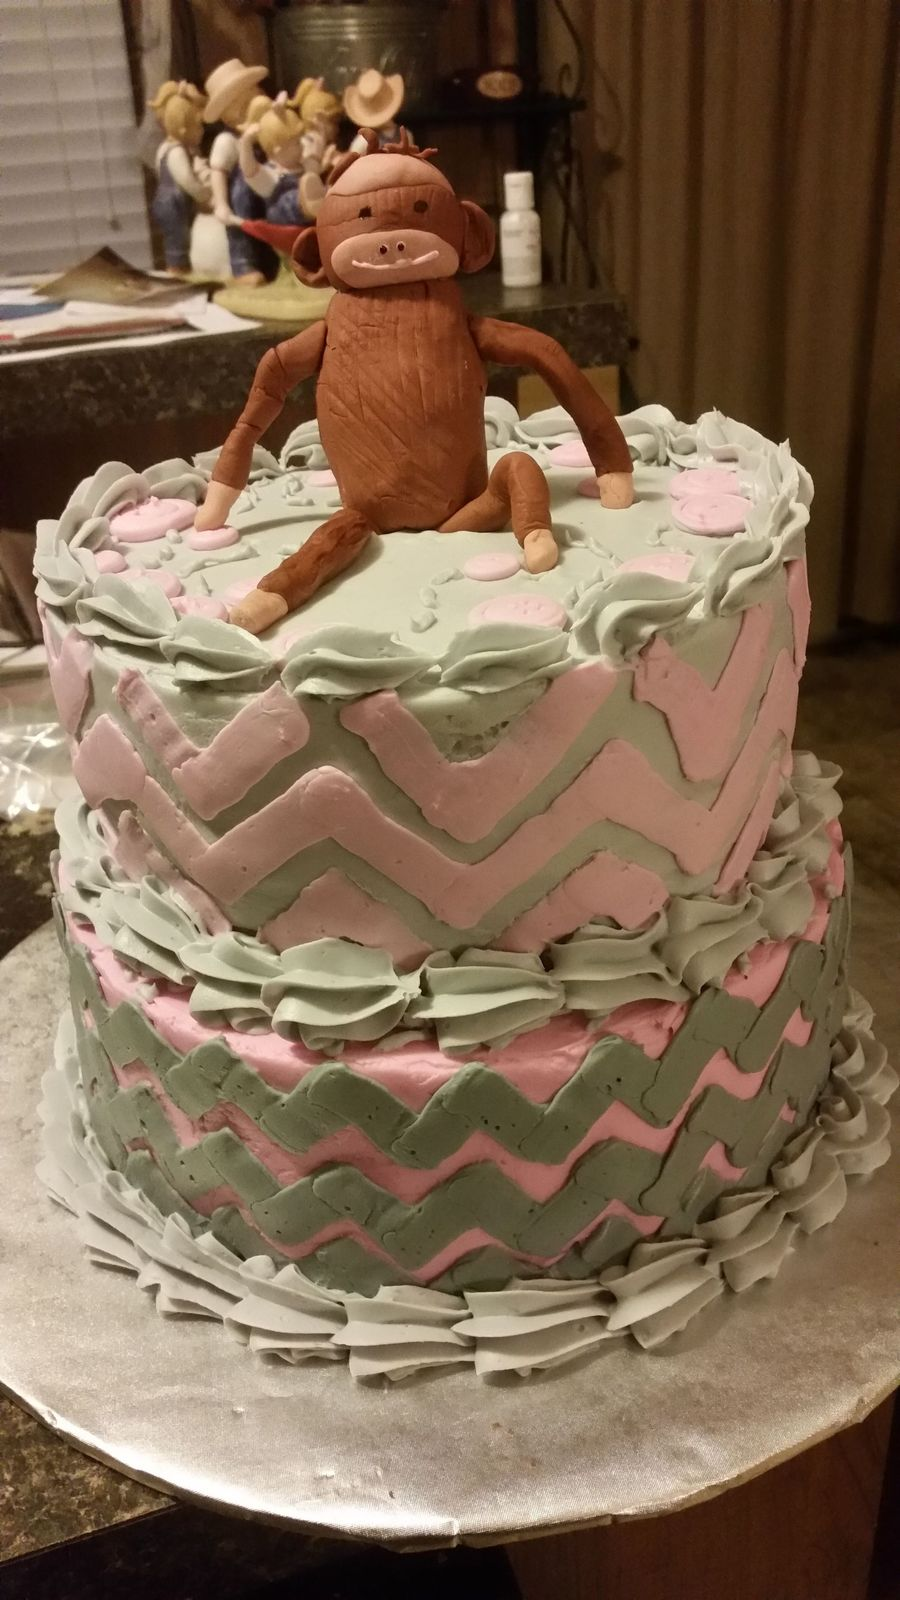 My First Sock Monkey Cake For A Little Girls Baby Shower Top Tier Is